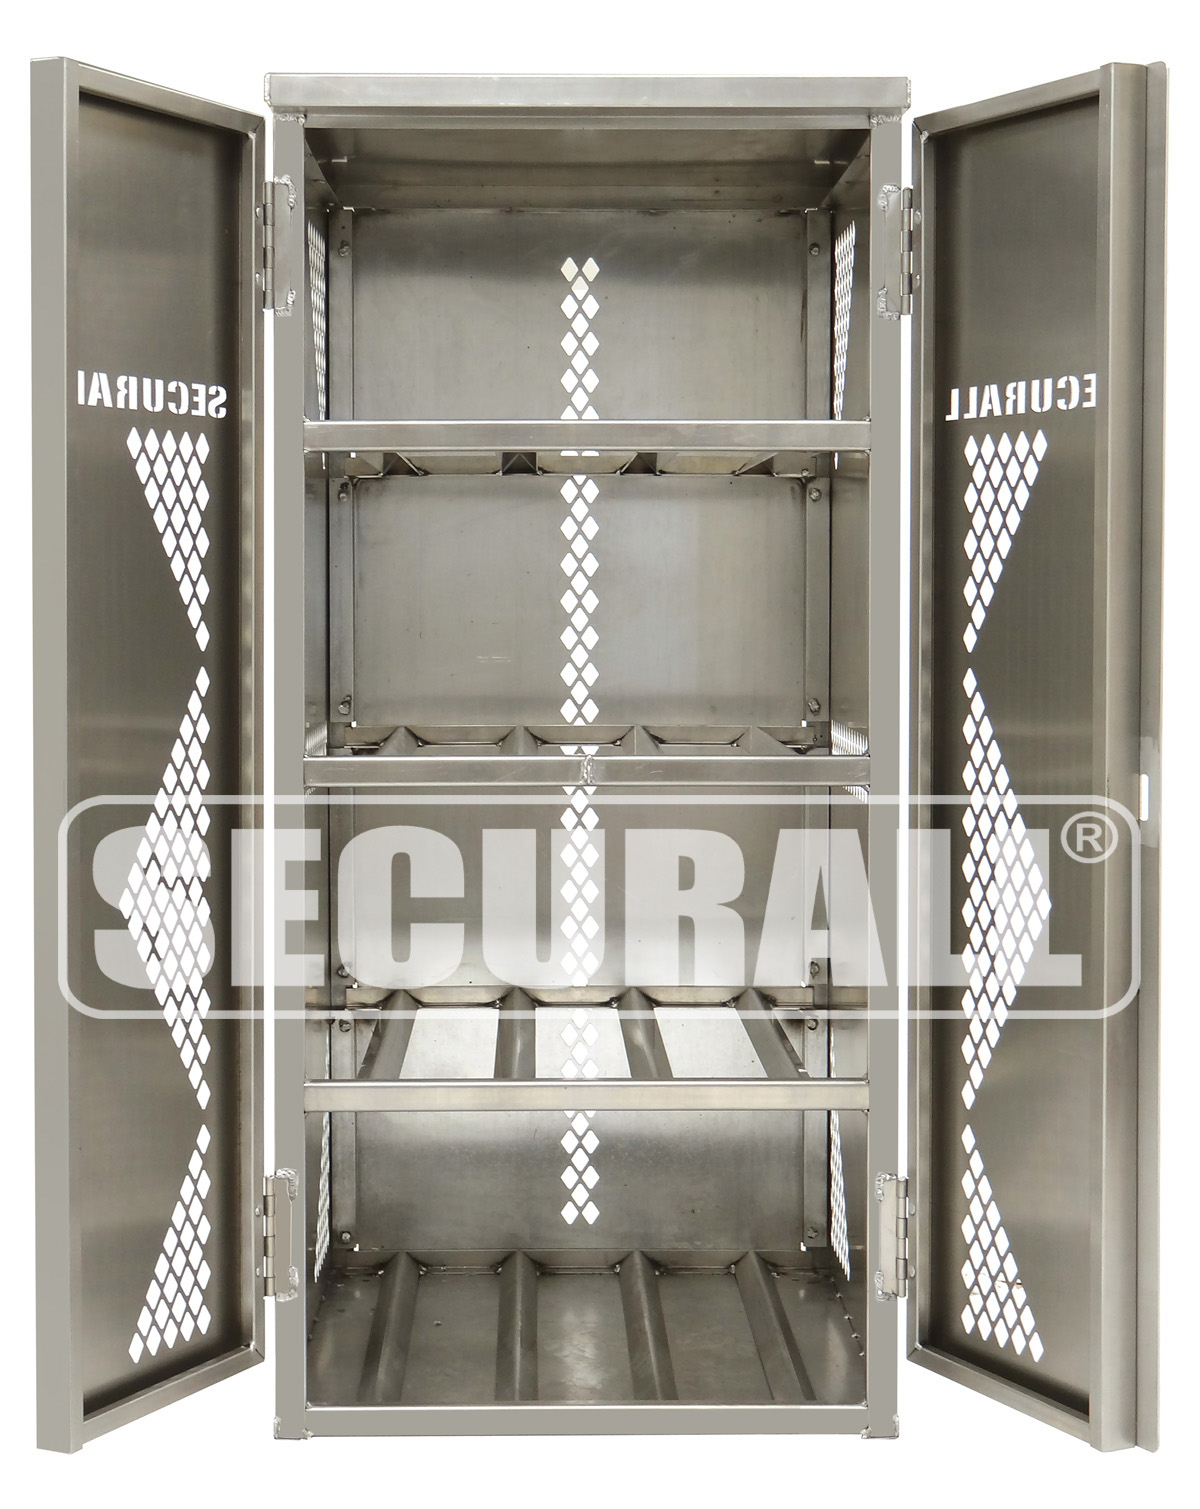 Lp8 S Propane Cylinder Cage